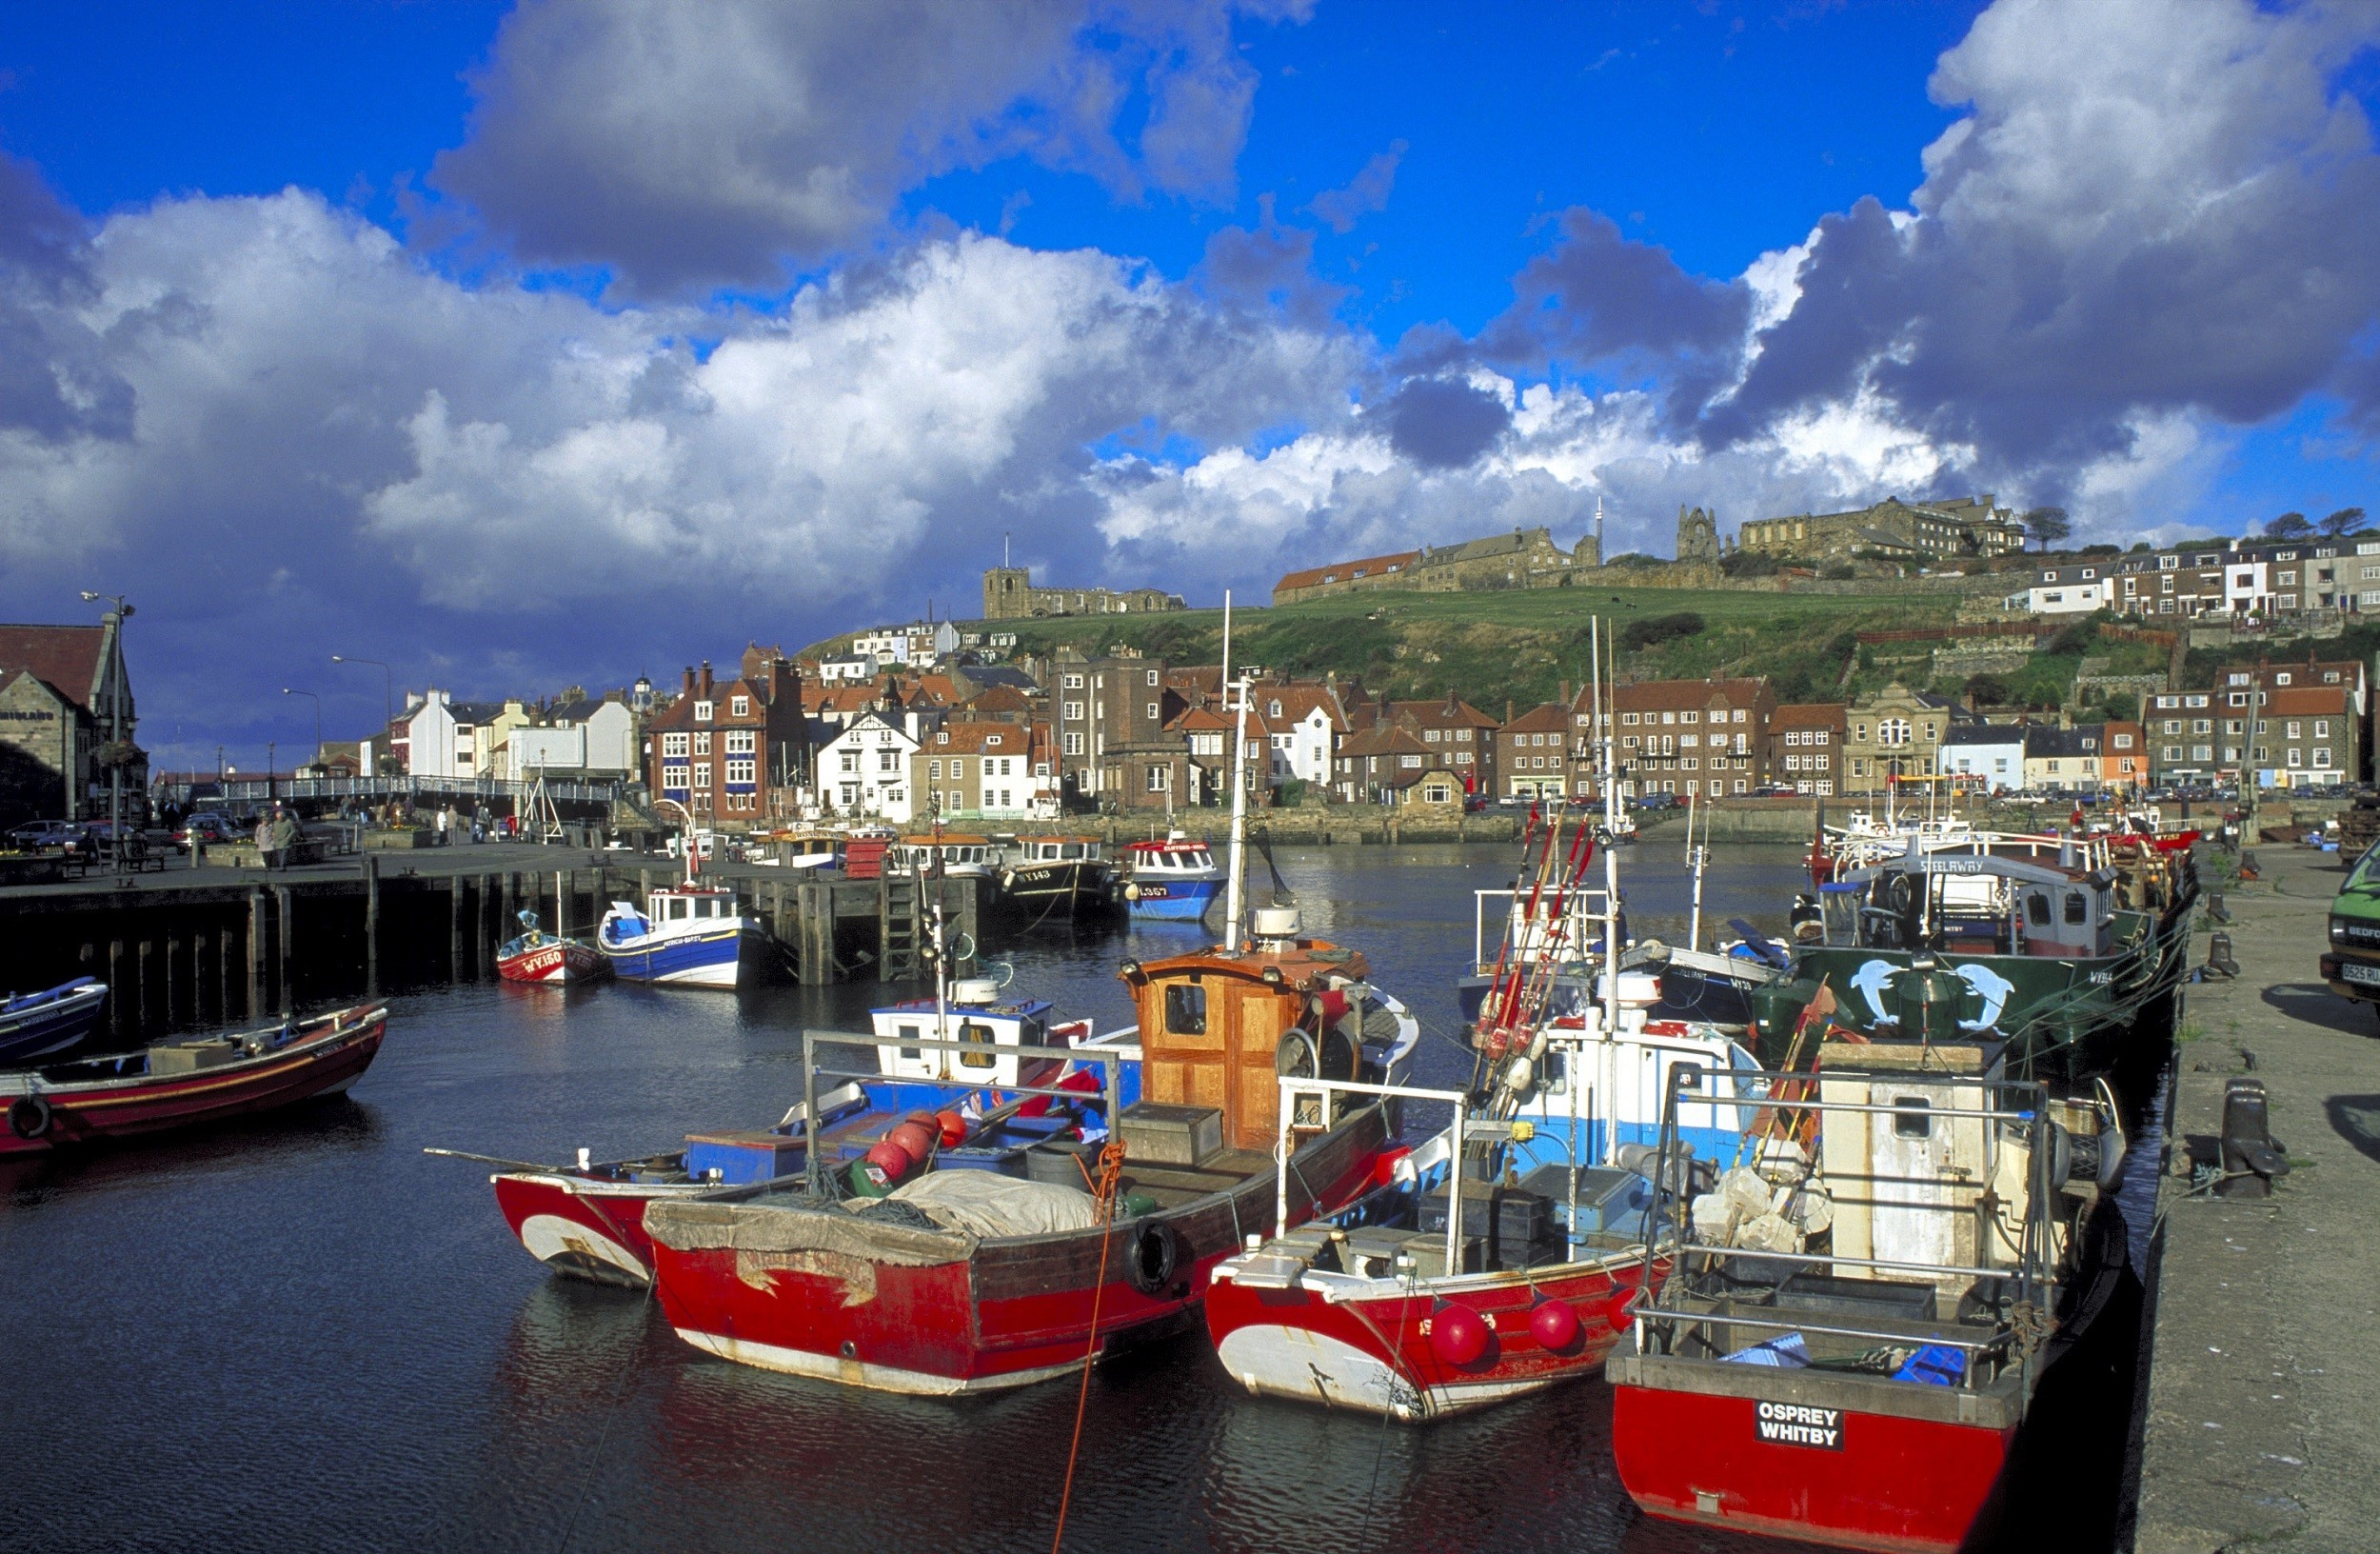 Whitby Visitbritain